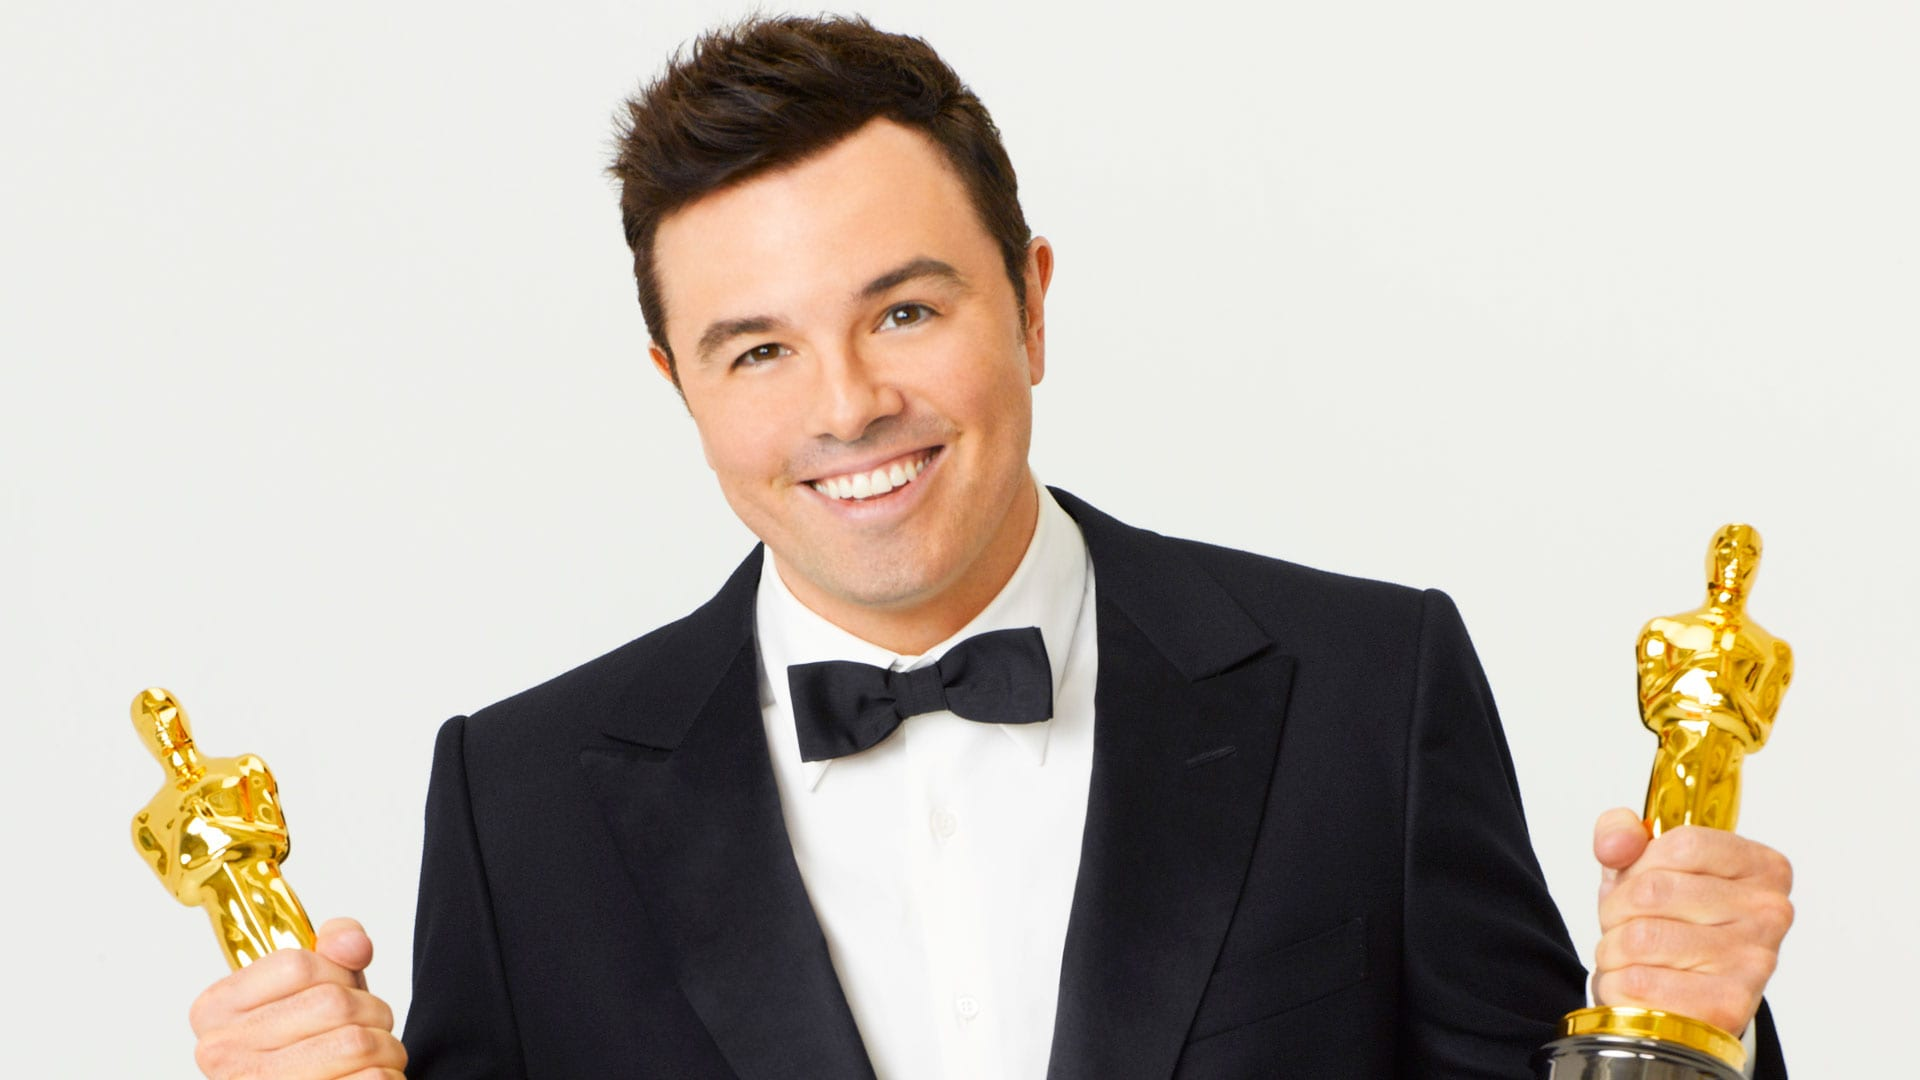 Seth Macfarlane Background